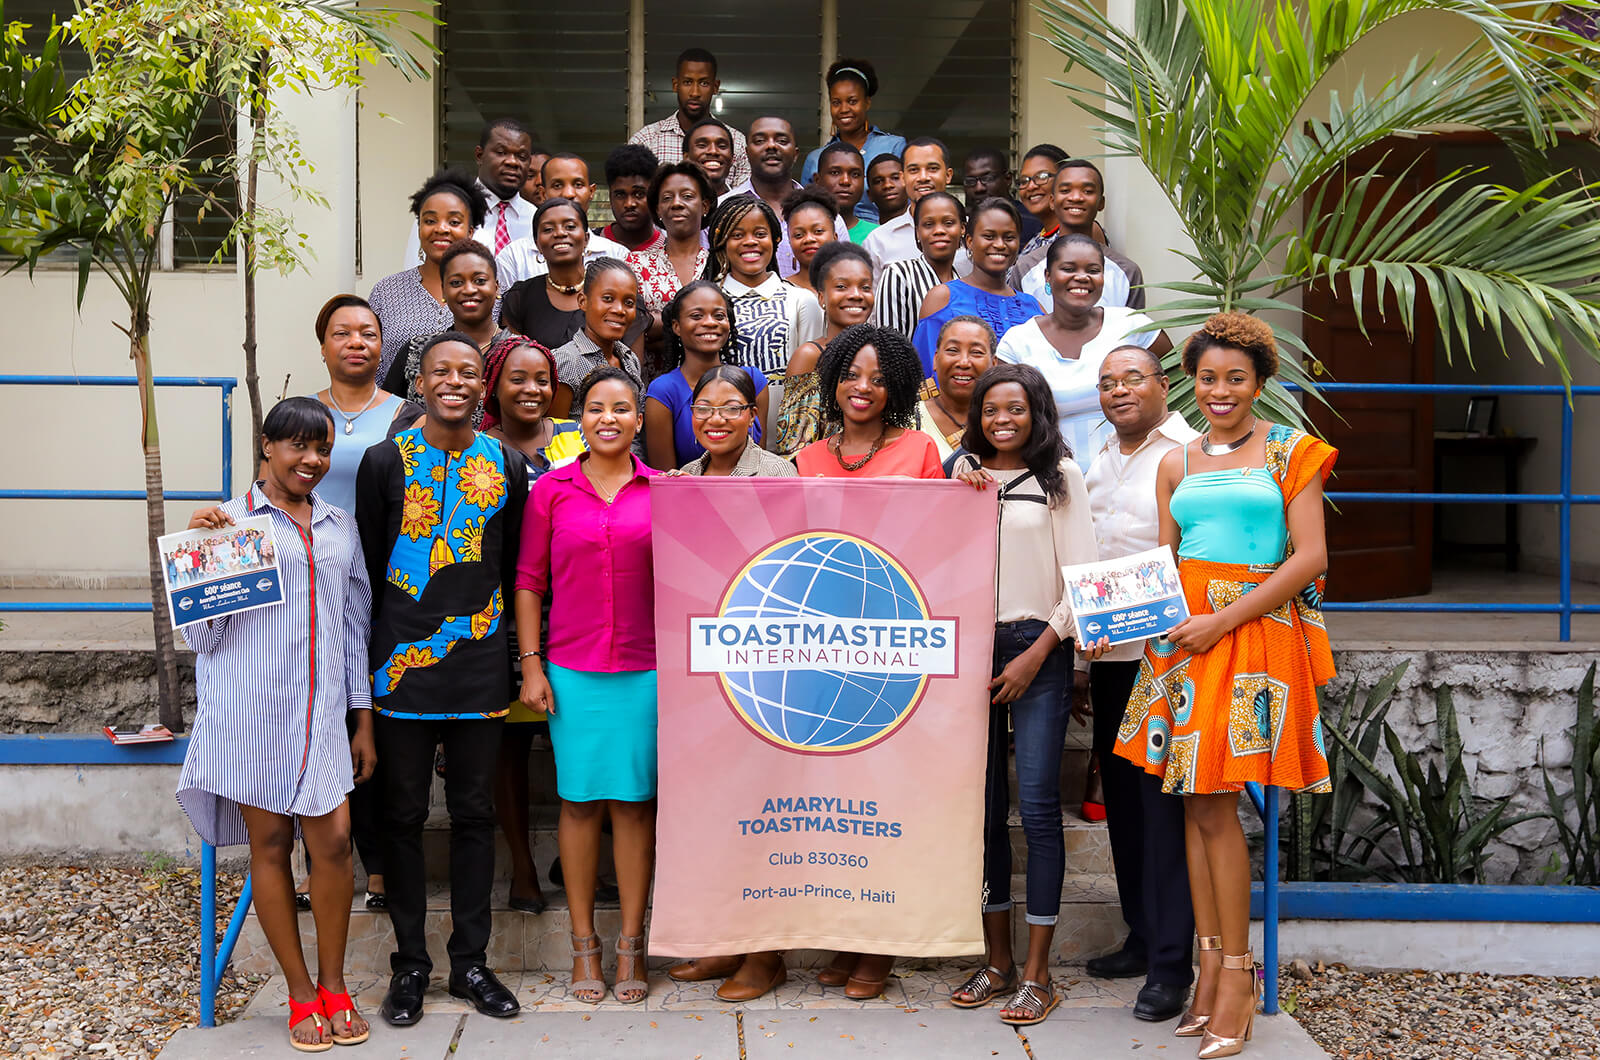 The Amaryllis Toastmasters club in Port-au-Prince, Haïti, celebrates its 600th meeting.